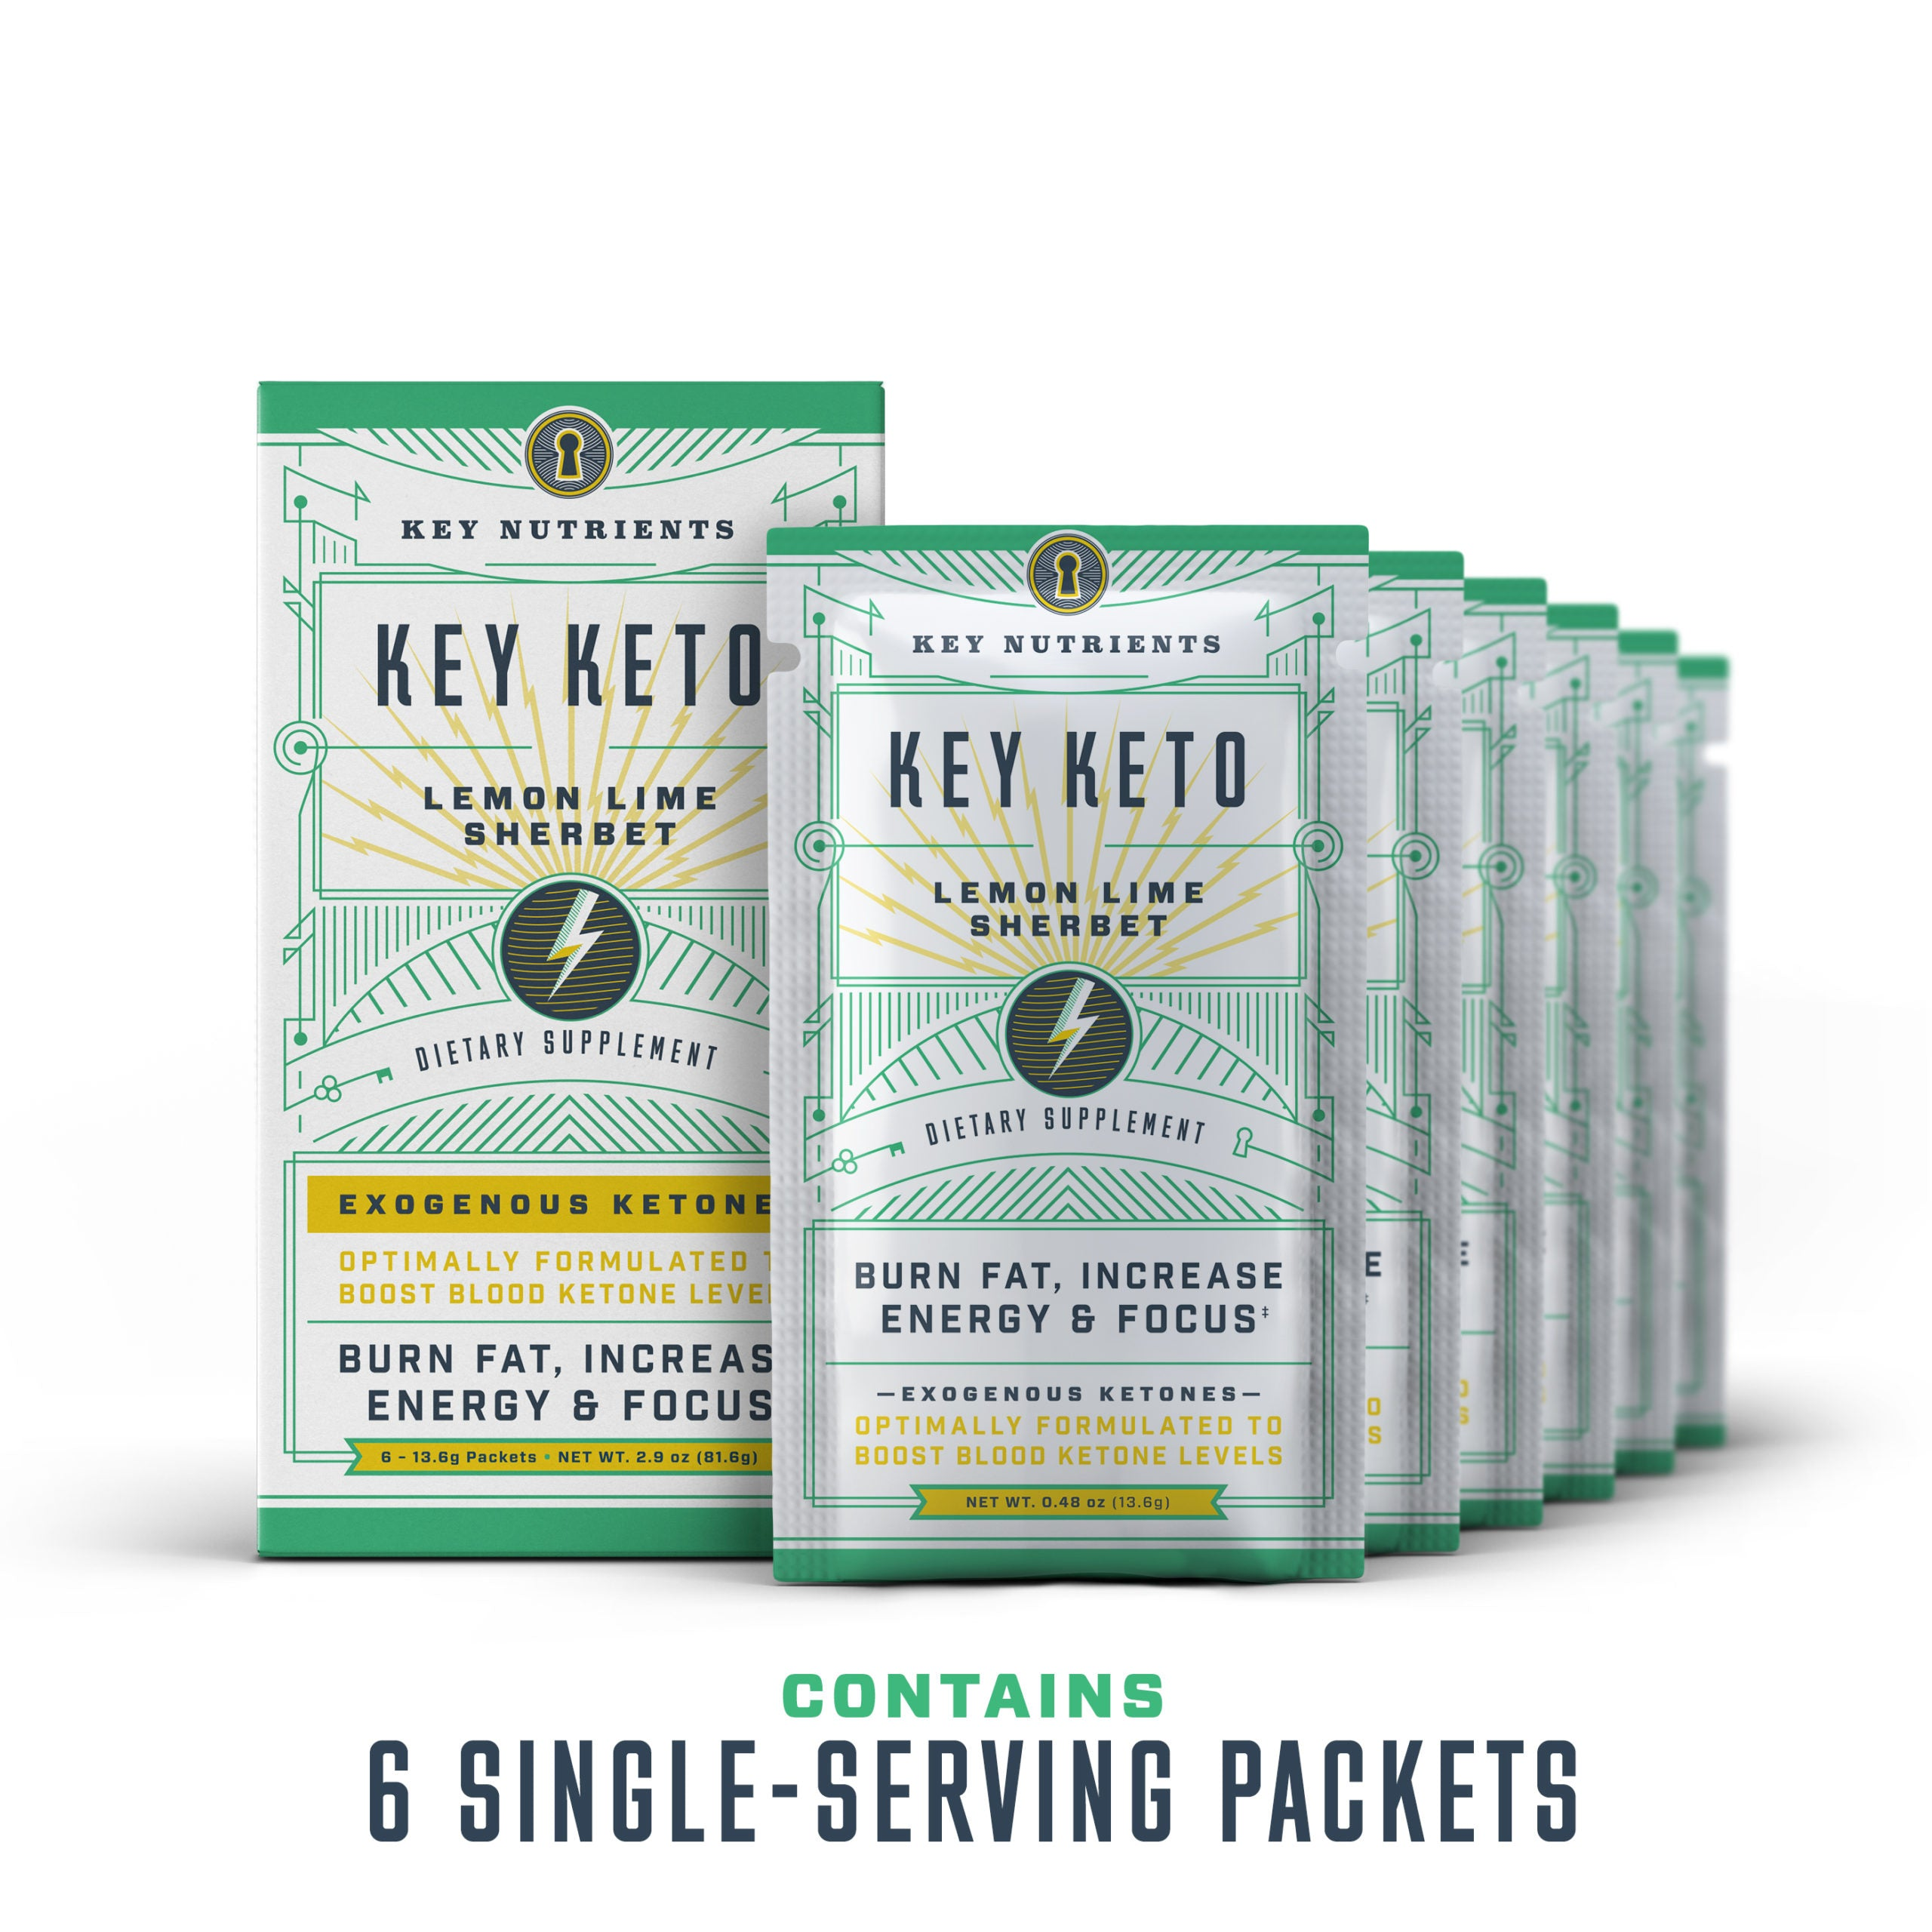 Key Keto - Lemon Lime Sherbet Travel Pouches - 6 Pack